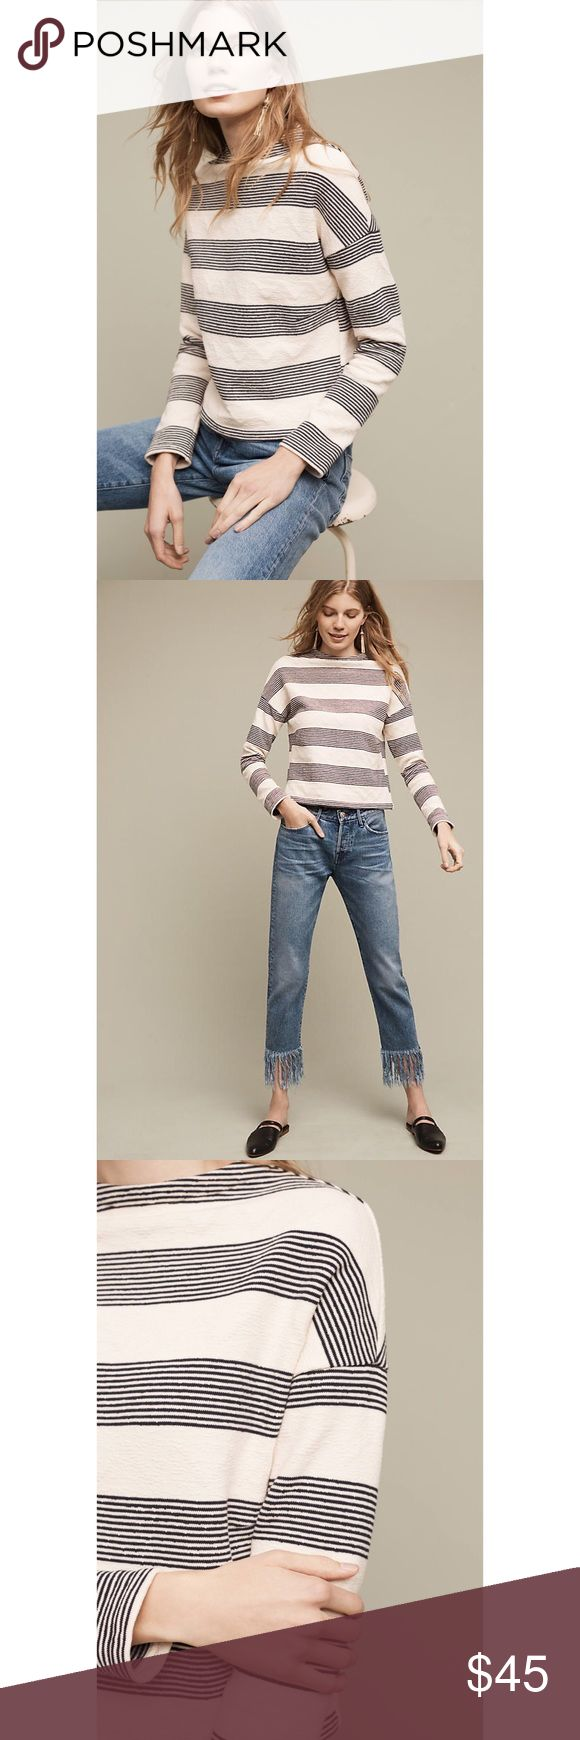 NWT Anthropologie Striped Sweatshirt Size Small NWT! Off-white sweatshirt with stripes. I bought this in store without trying it on. It didn't look right on me, but I missed the 30 day return window. It's in perfect condition! Anthropologie Tops